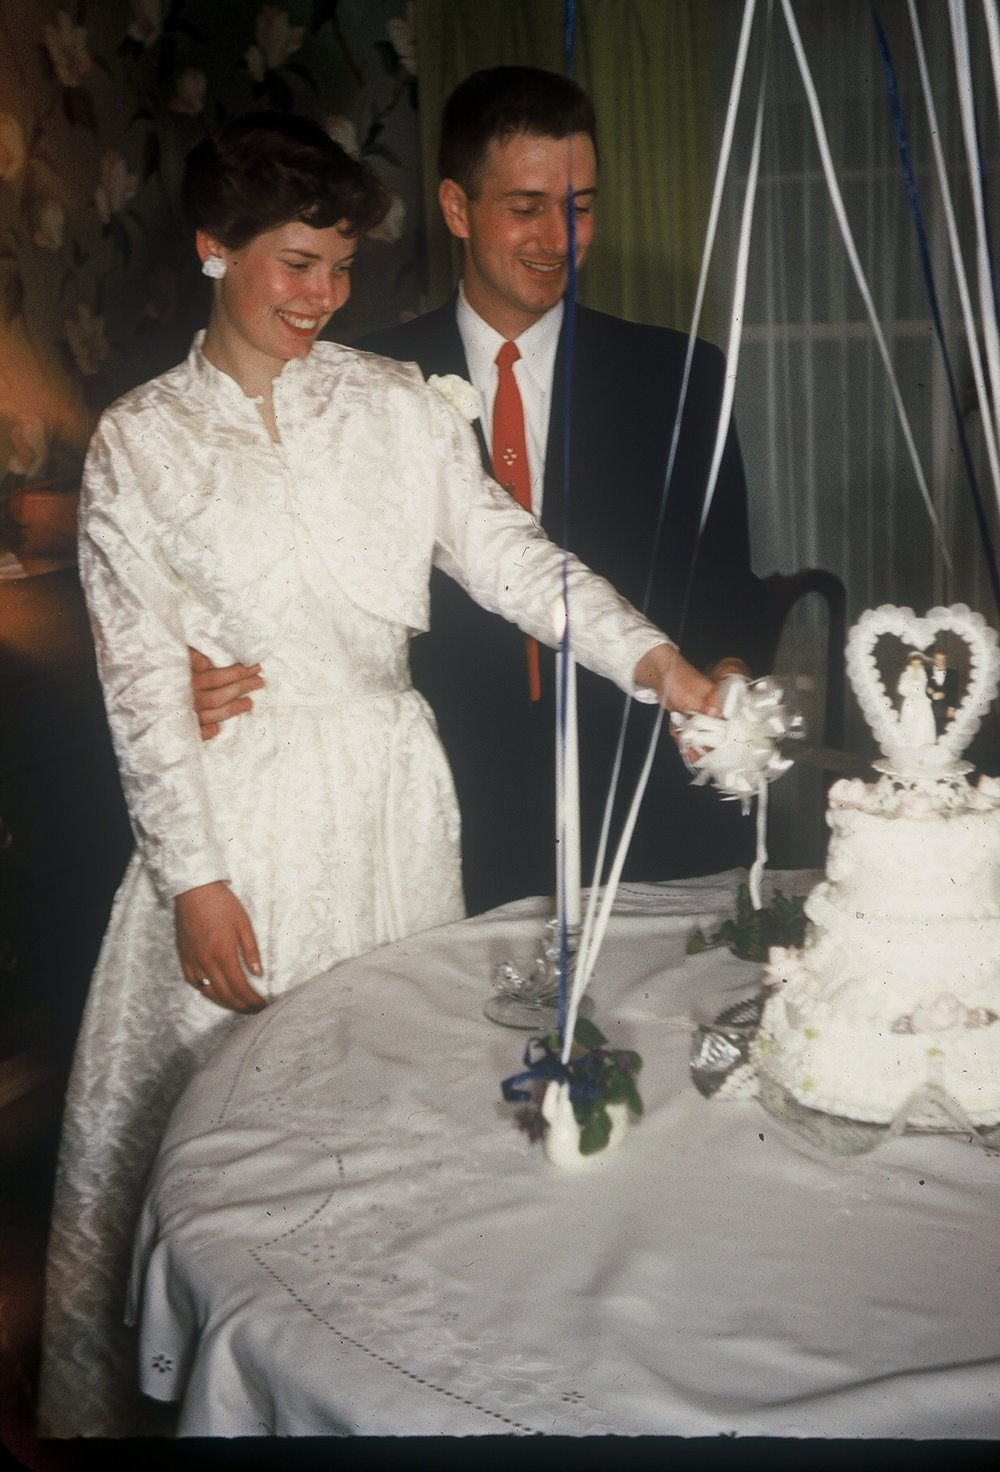 Howard and Kay Wedding Cake.jpg